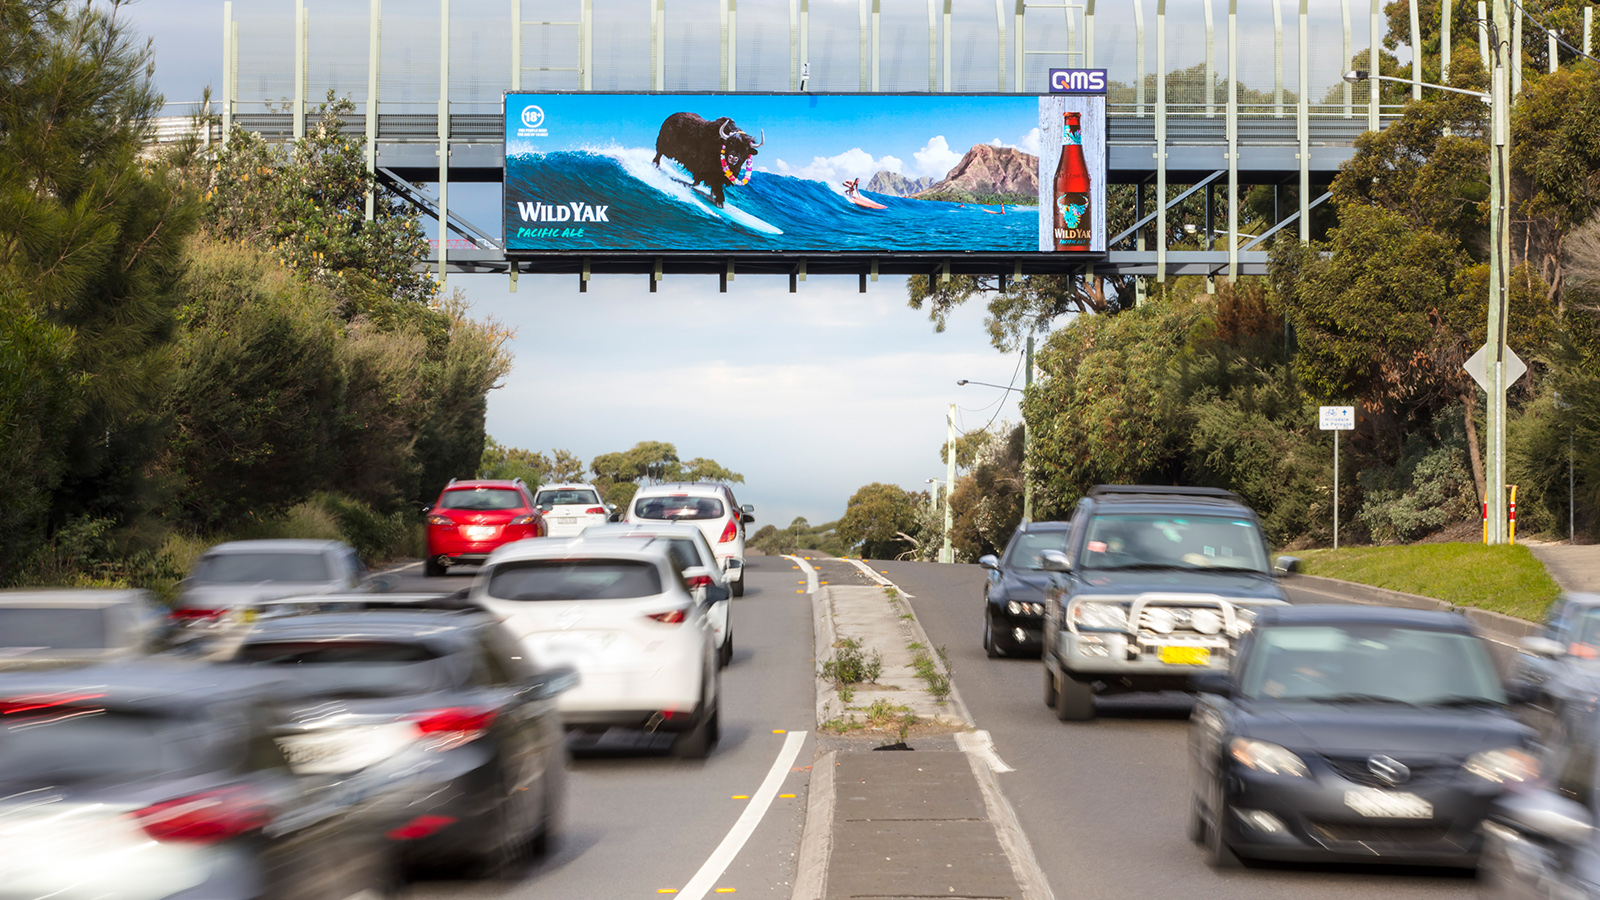 QMS 'The Lakes' digital billboard